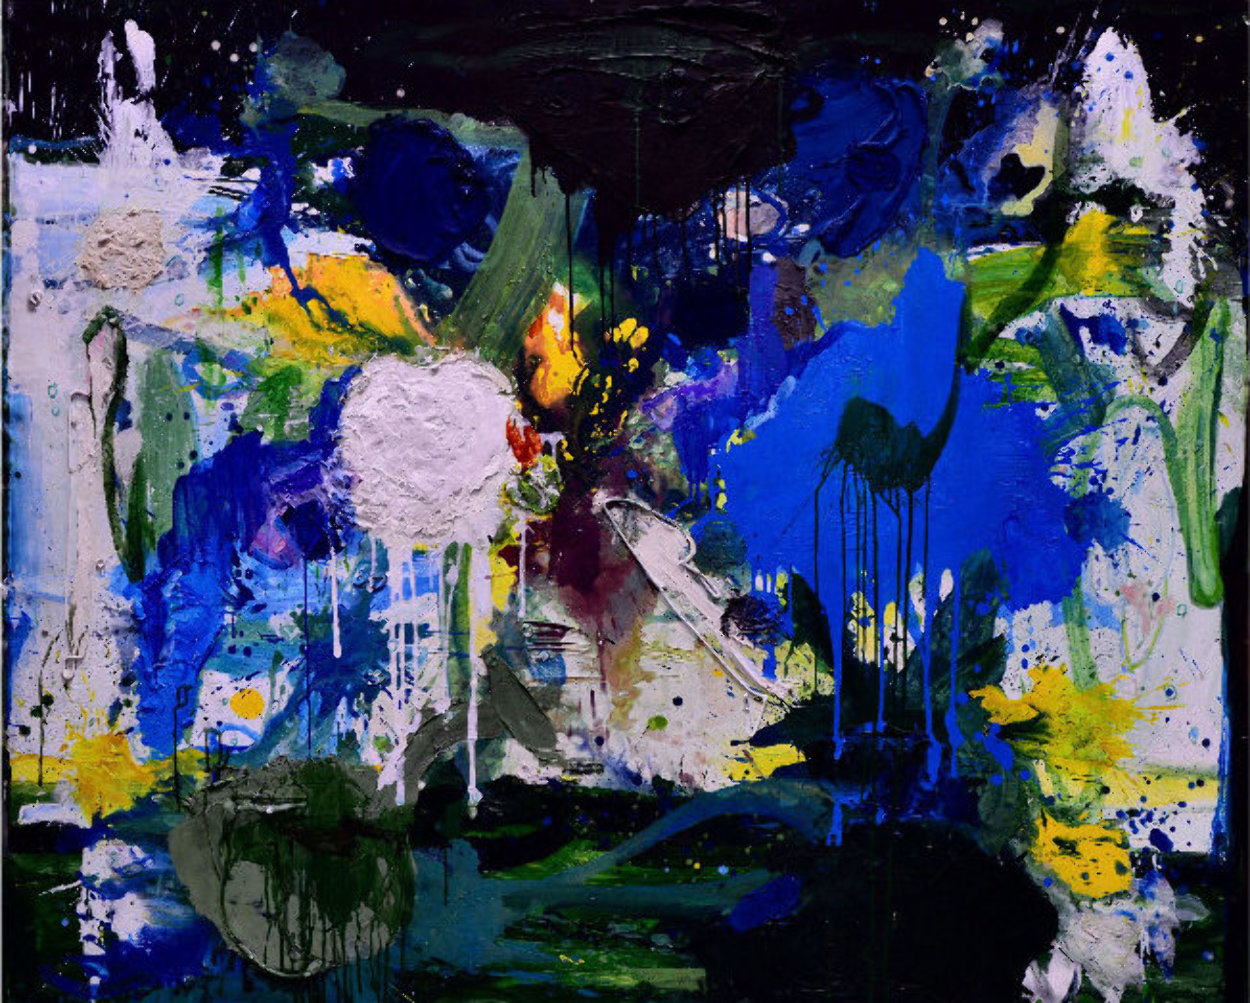 Summer in Blue 2017 72x60 Super Huge Original Painting by Costel Iarca